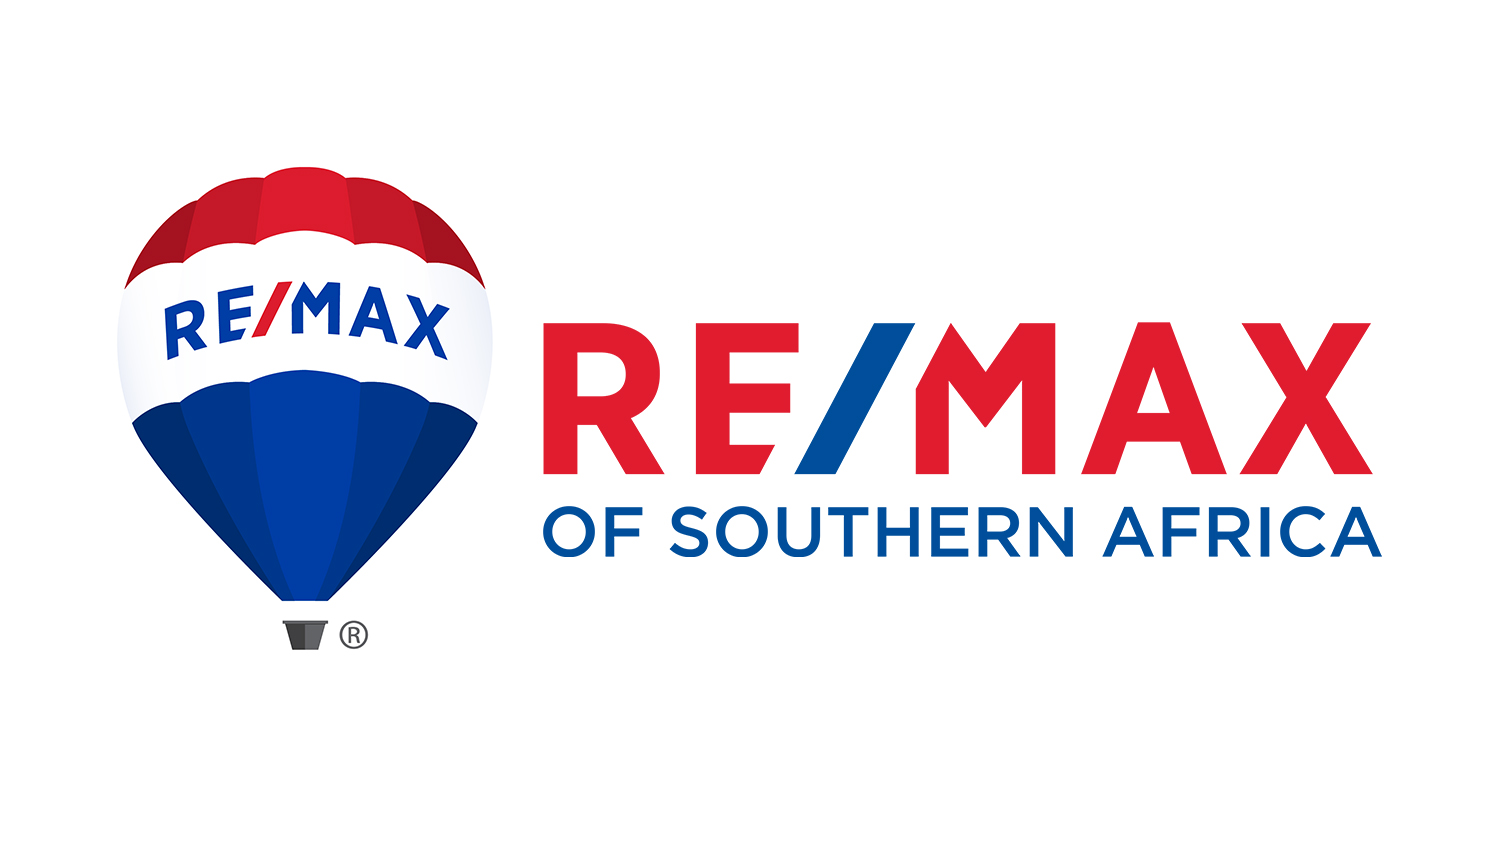 UNDERSTANDING THE RE/MAX BUSINESS MODEL